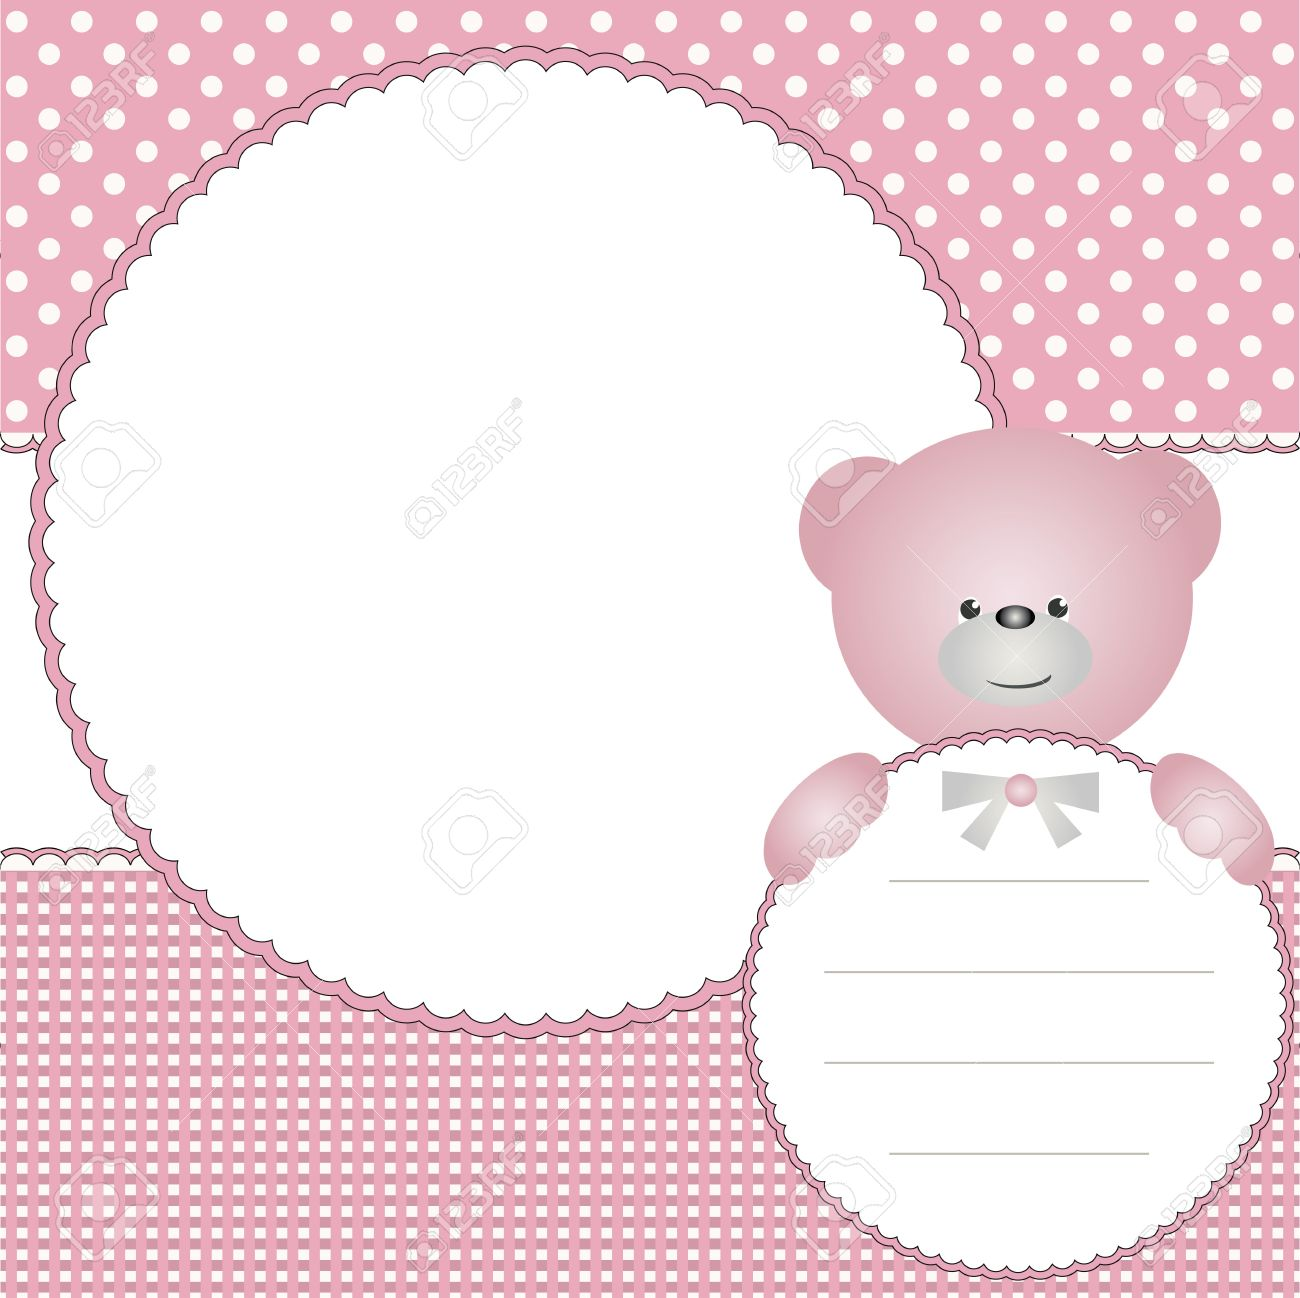 Free Baby Backgrounds Seamless Tiles